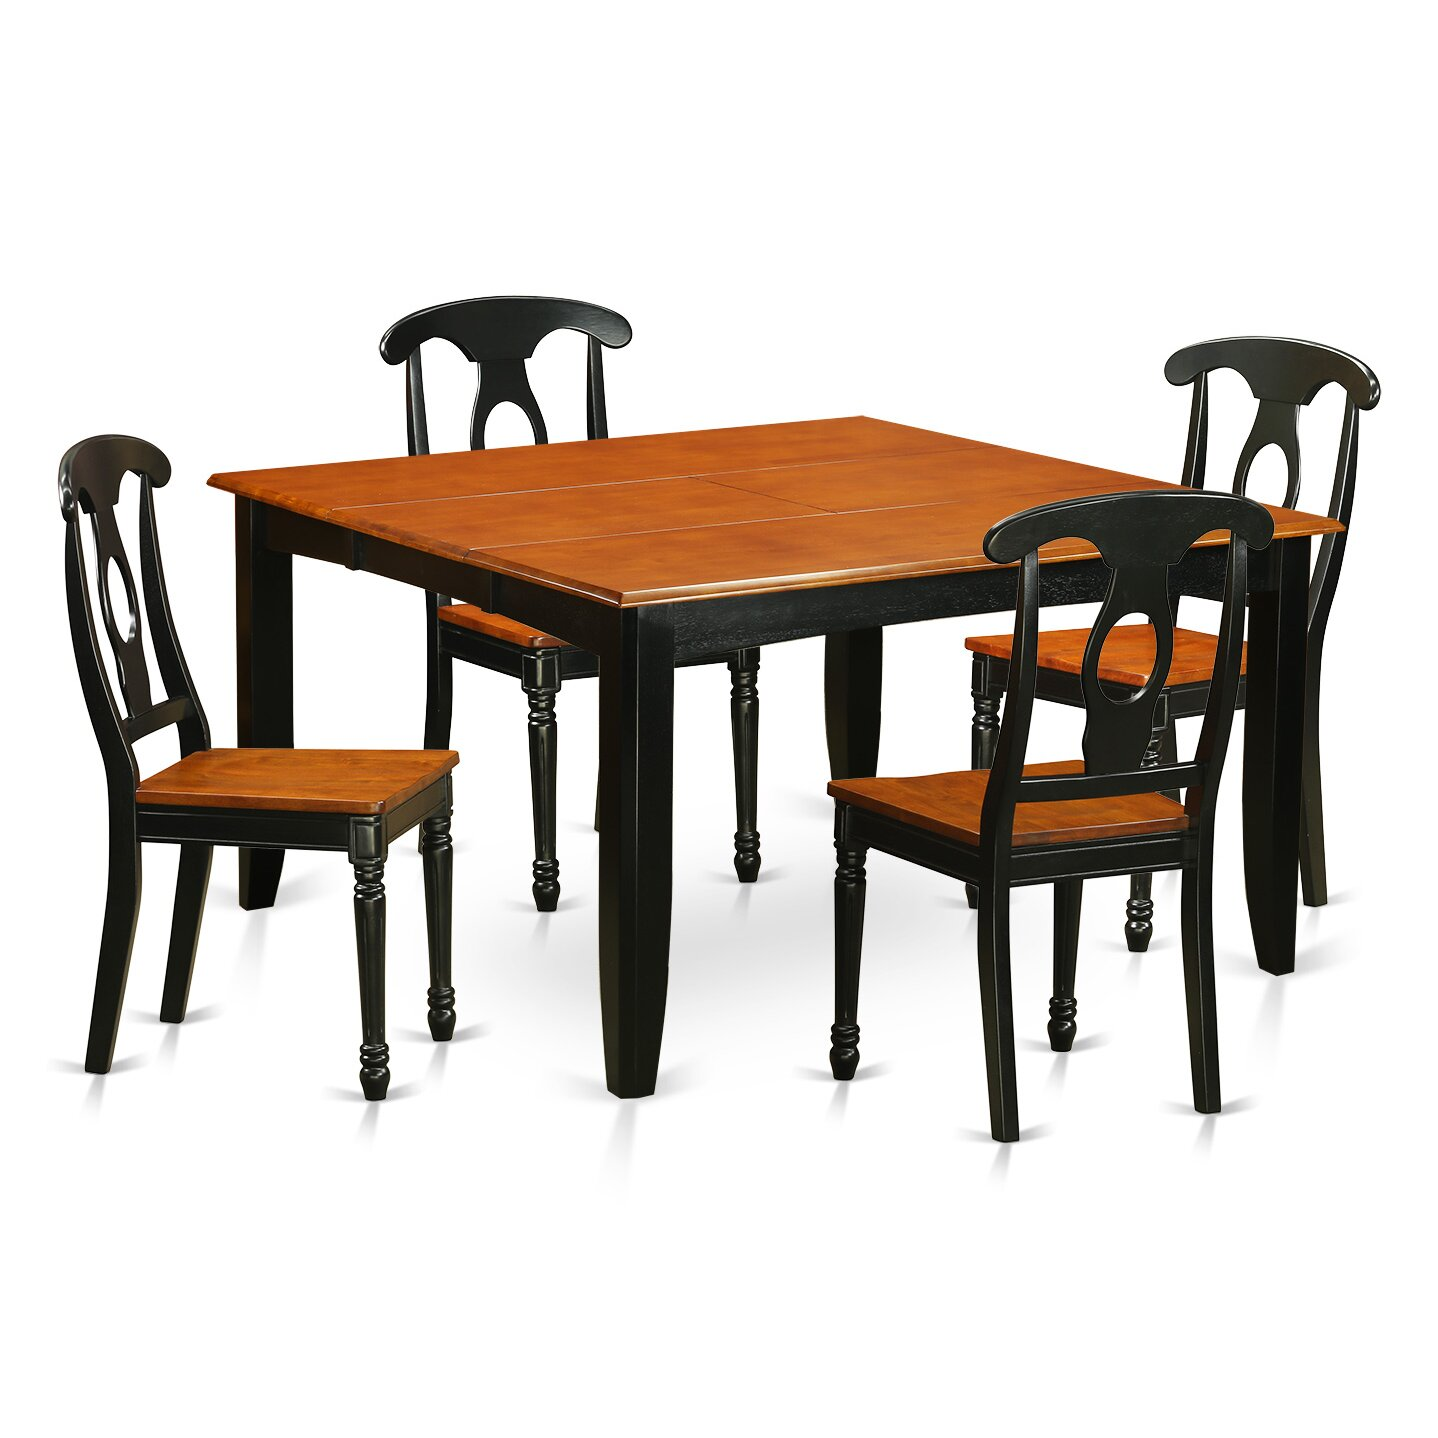 East west parfait 5 piece dining set reviews wayfair for Dining room table and 4 chairs